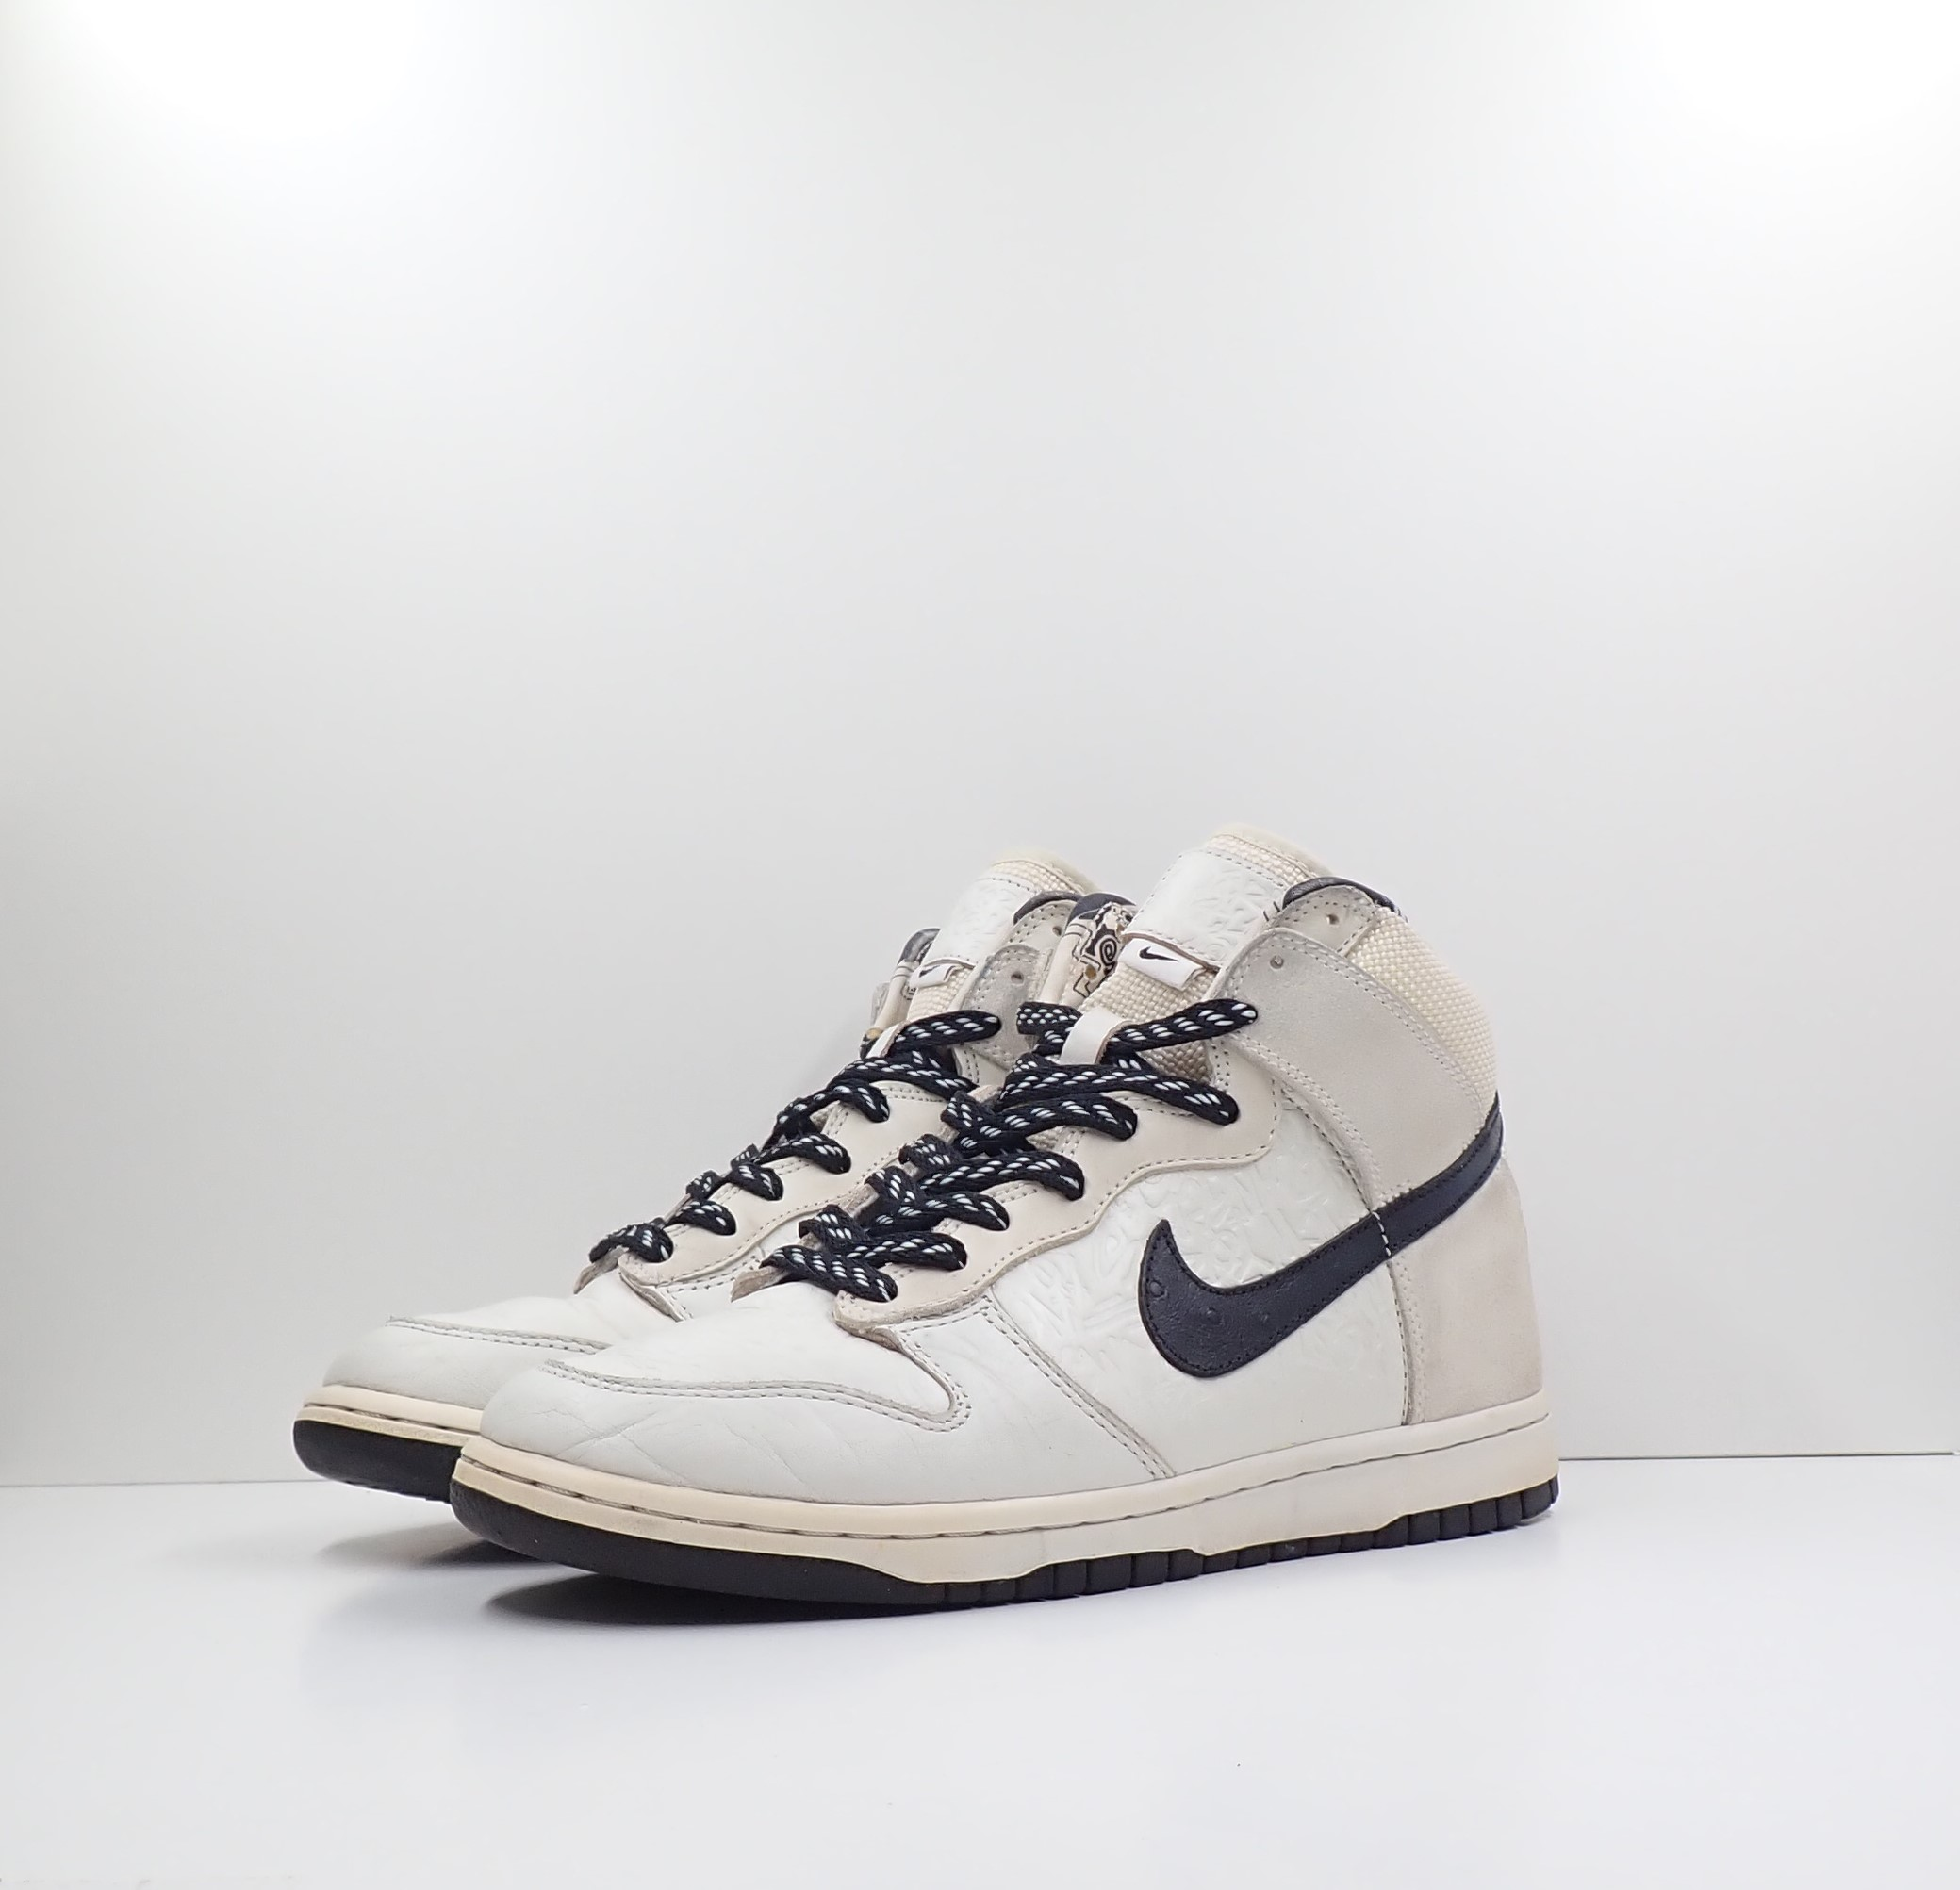 Nike Dunk High Stussy World Tour